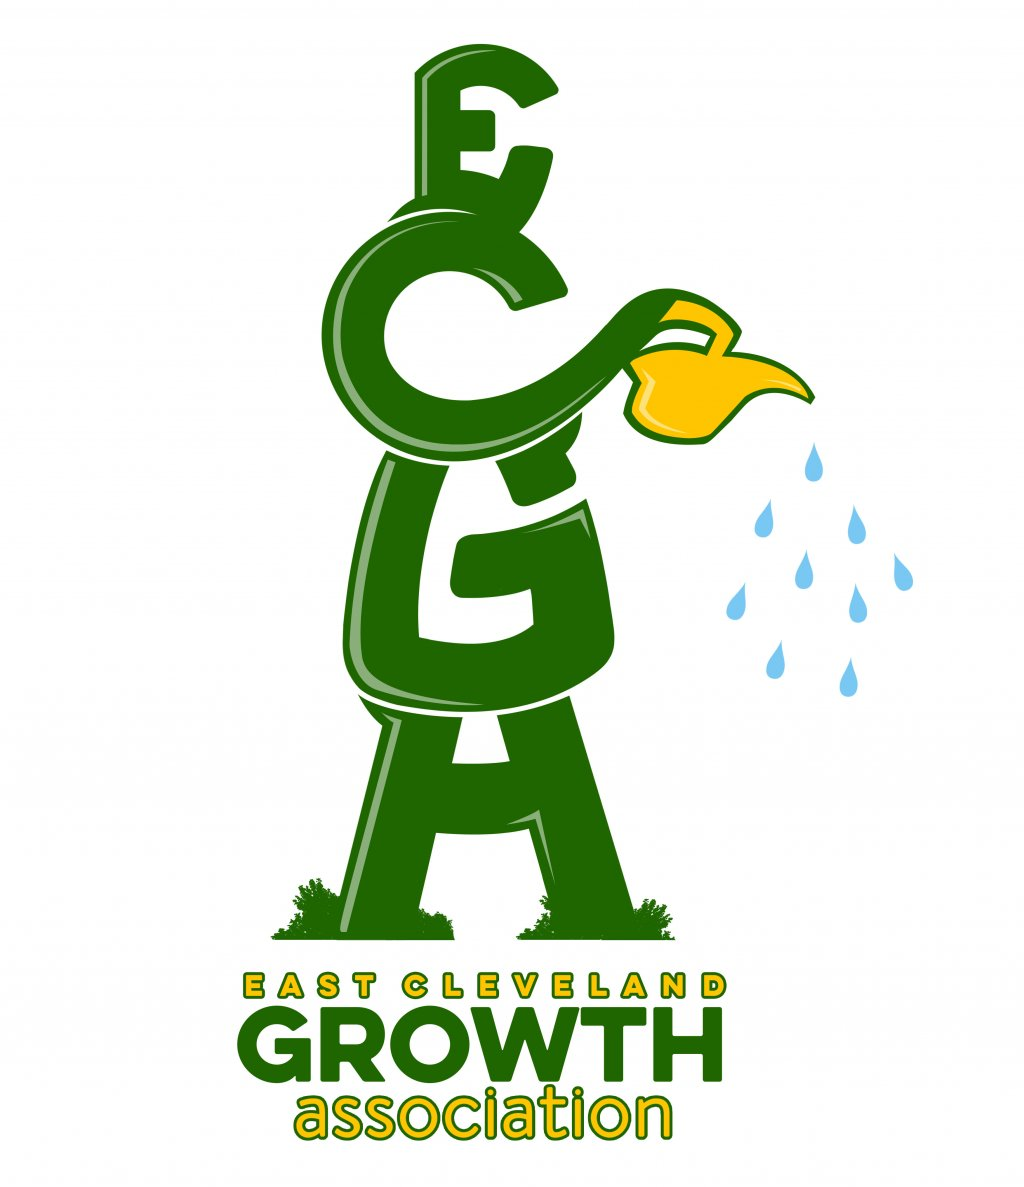 East Cleveland Growth Association